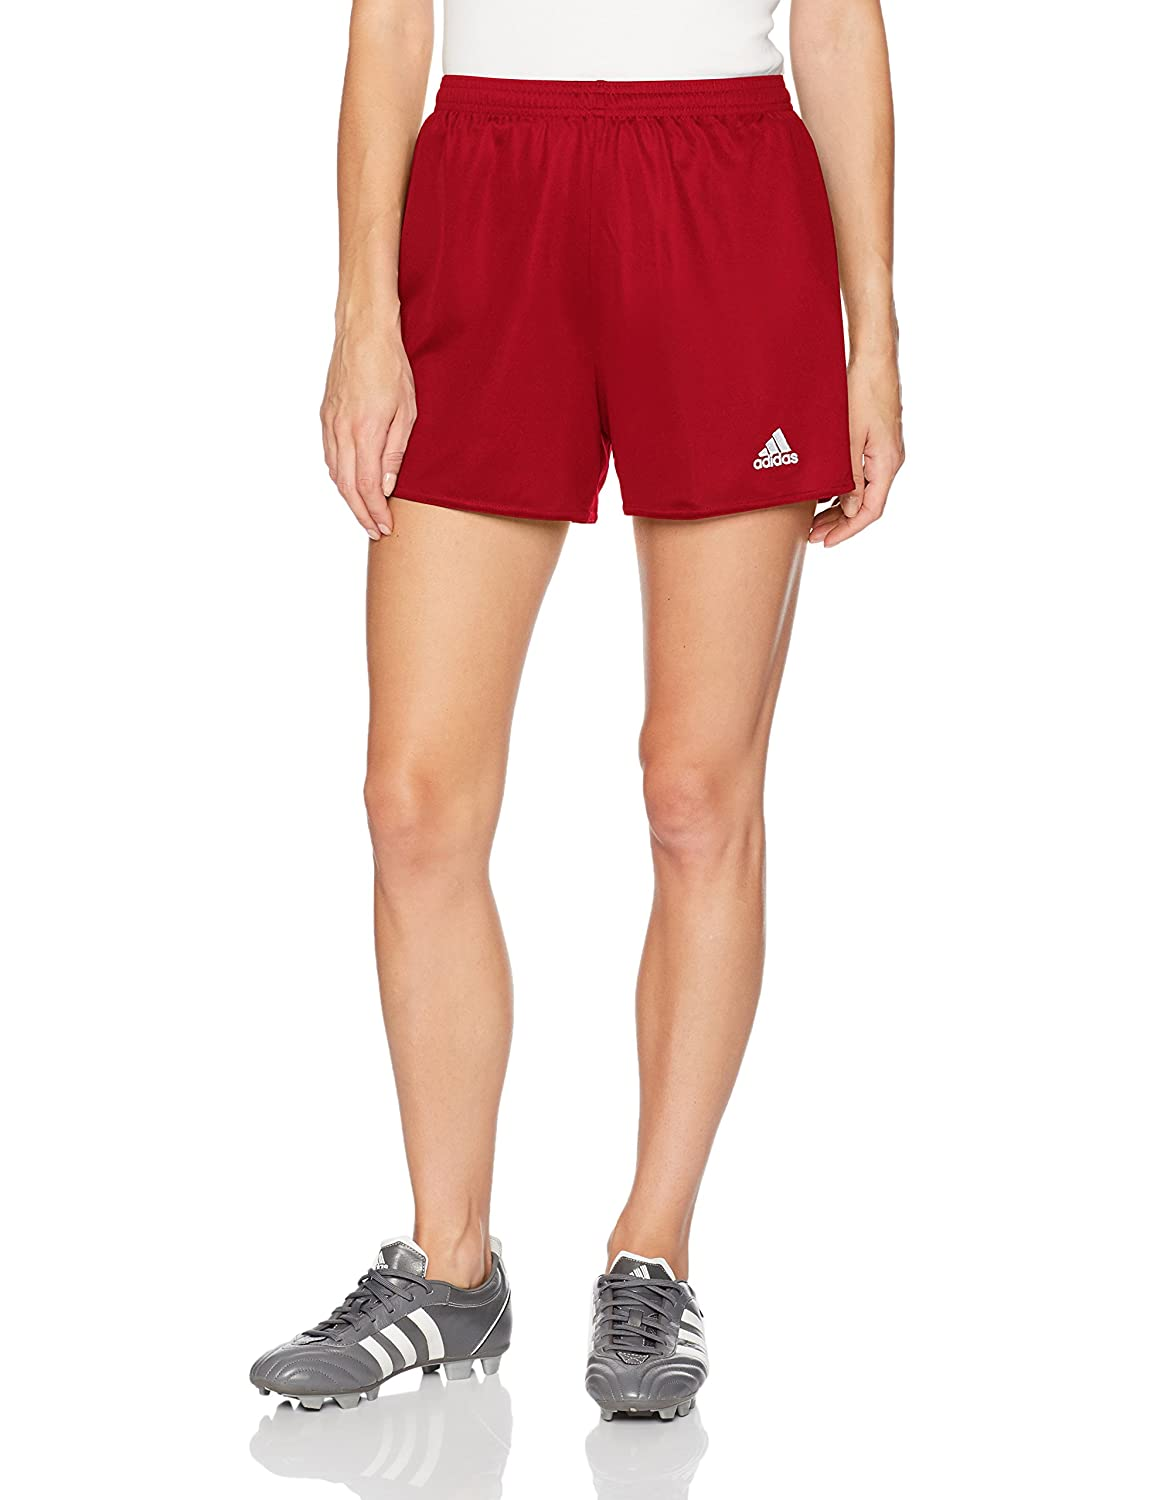 AdidasレディースサッカーParma Shorts B010DKXHEC X-Small|Power Red/White Power Red/White X-Small